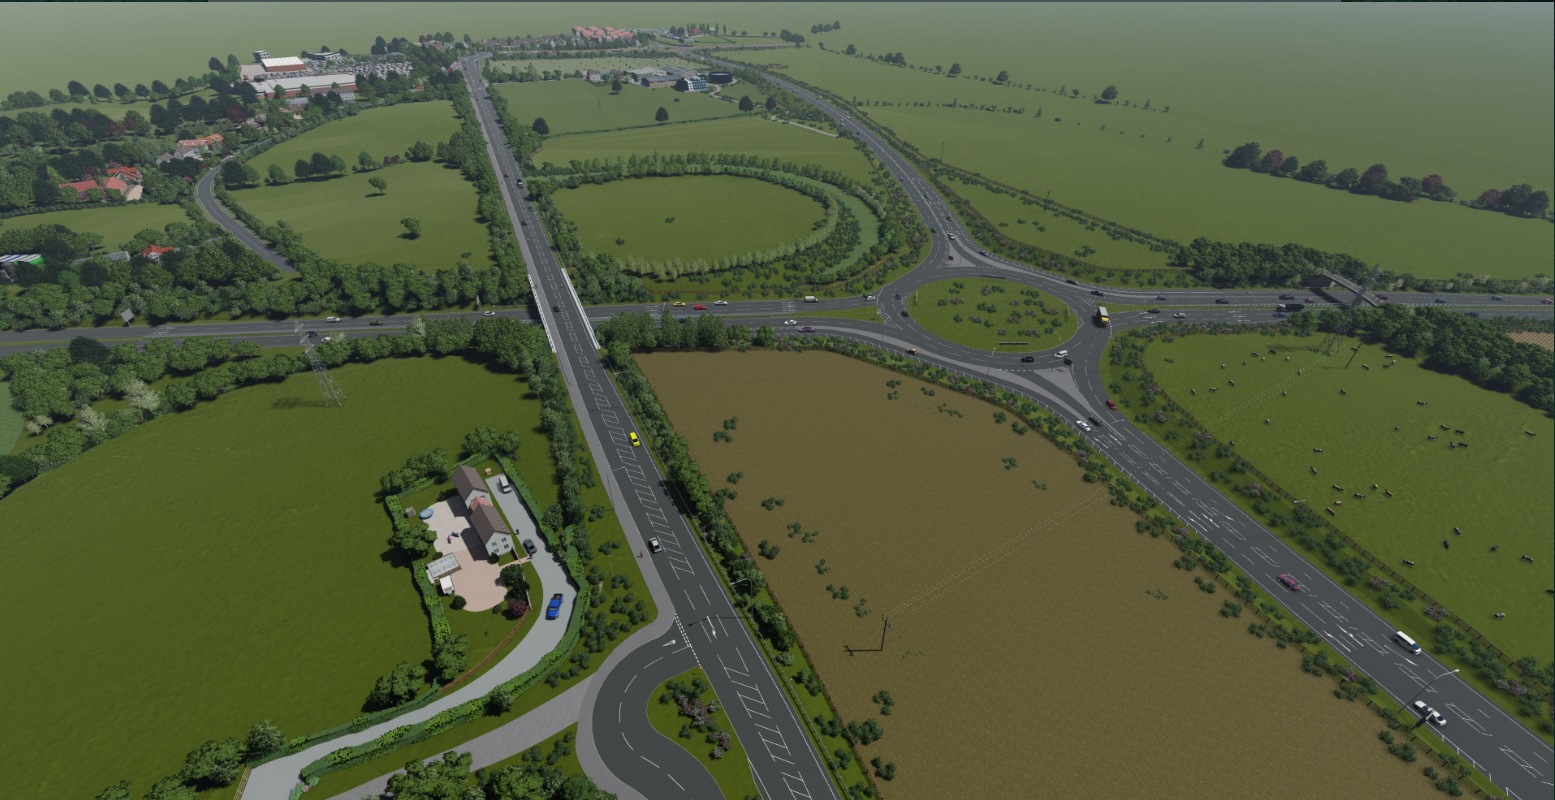 Aerial view of the A164 at Jocks Lodge and new roundabout on the A1079 looking north towards Victoria Road